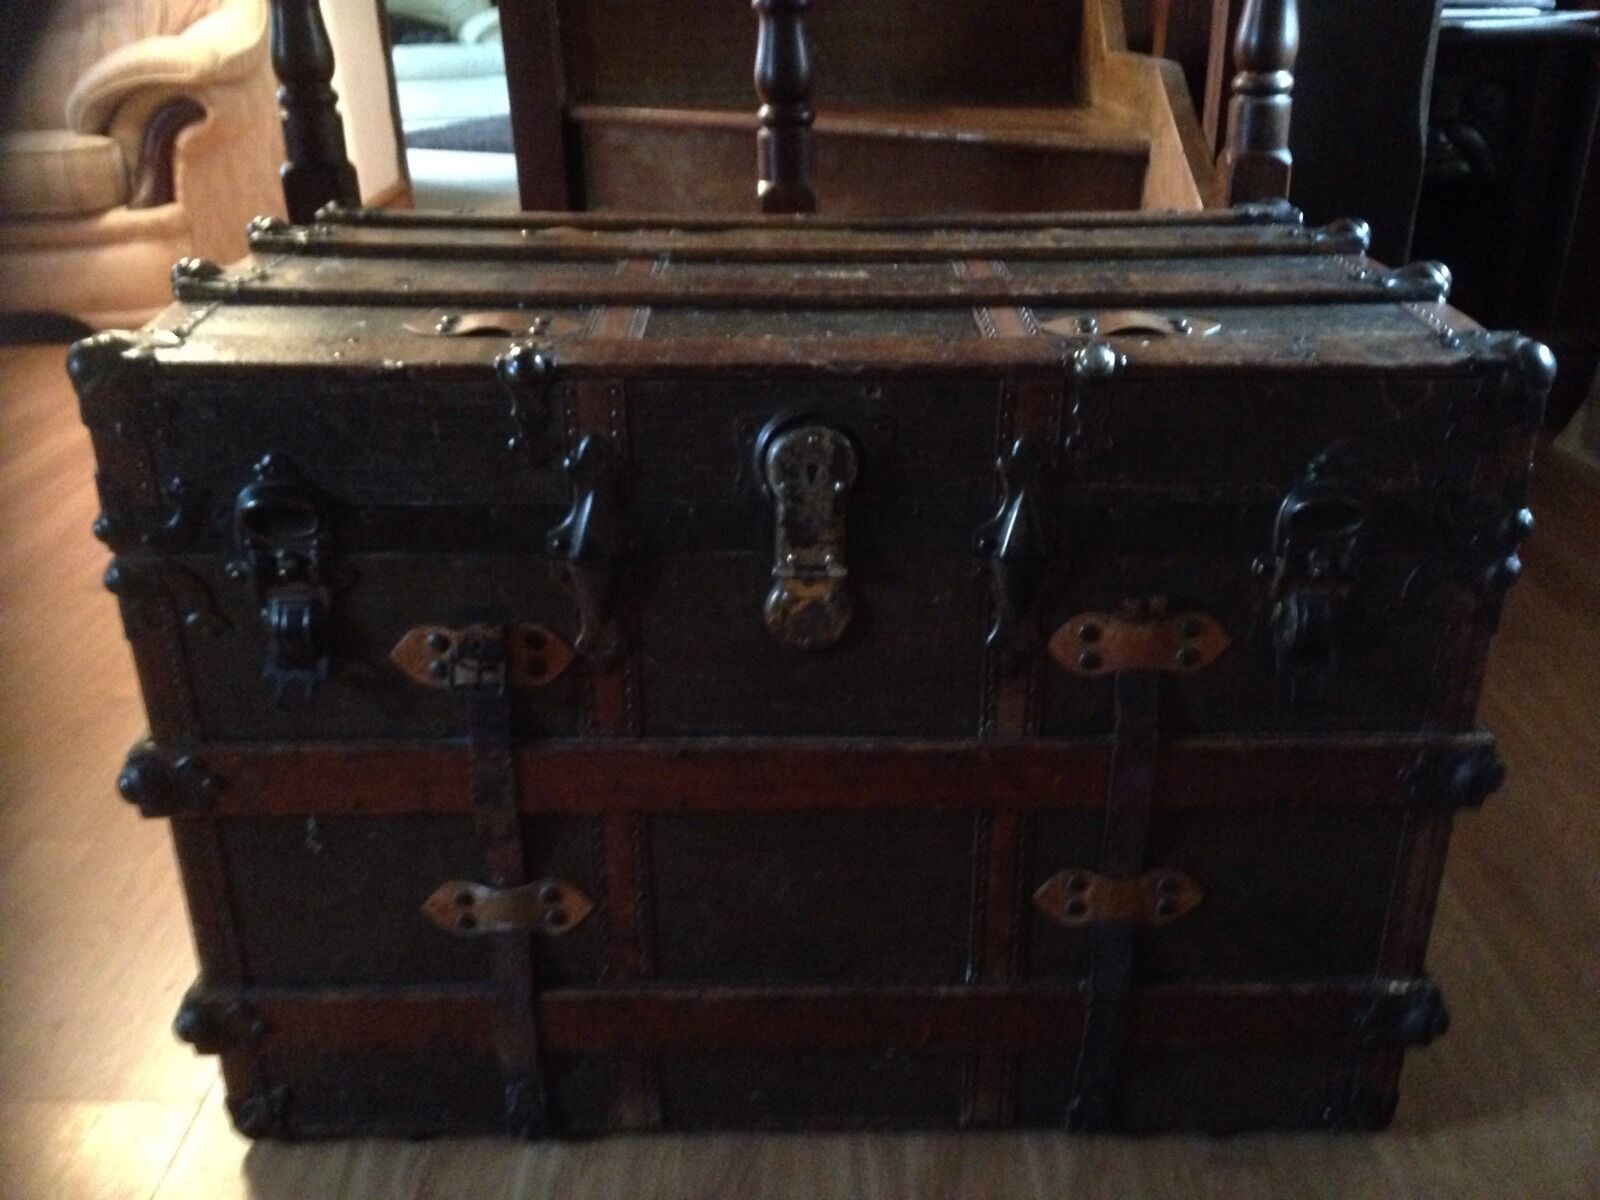 Antique Vintage Ships Trunk 19th Century, Collectable S S Friesland Ship